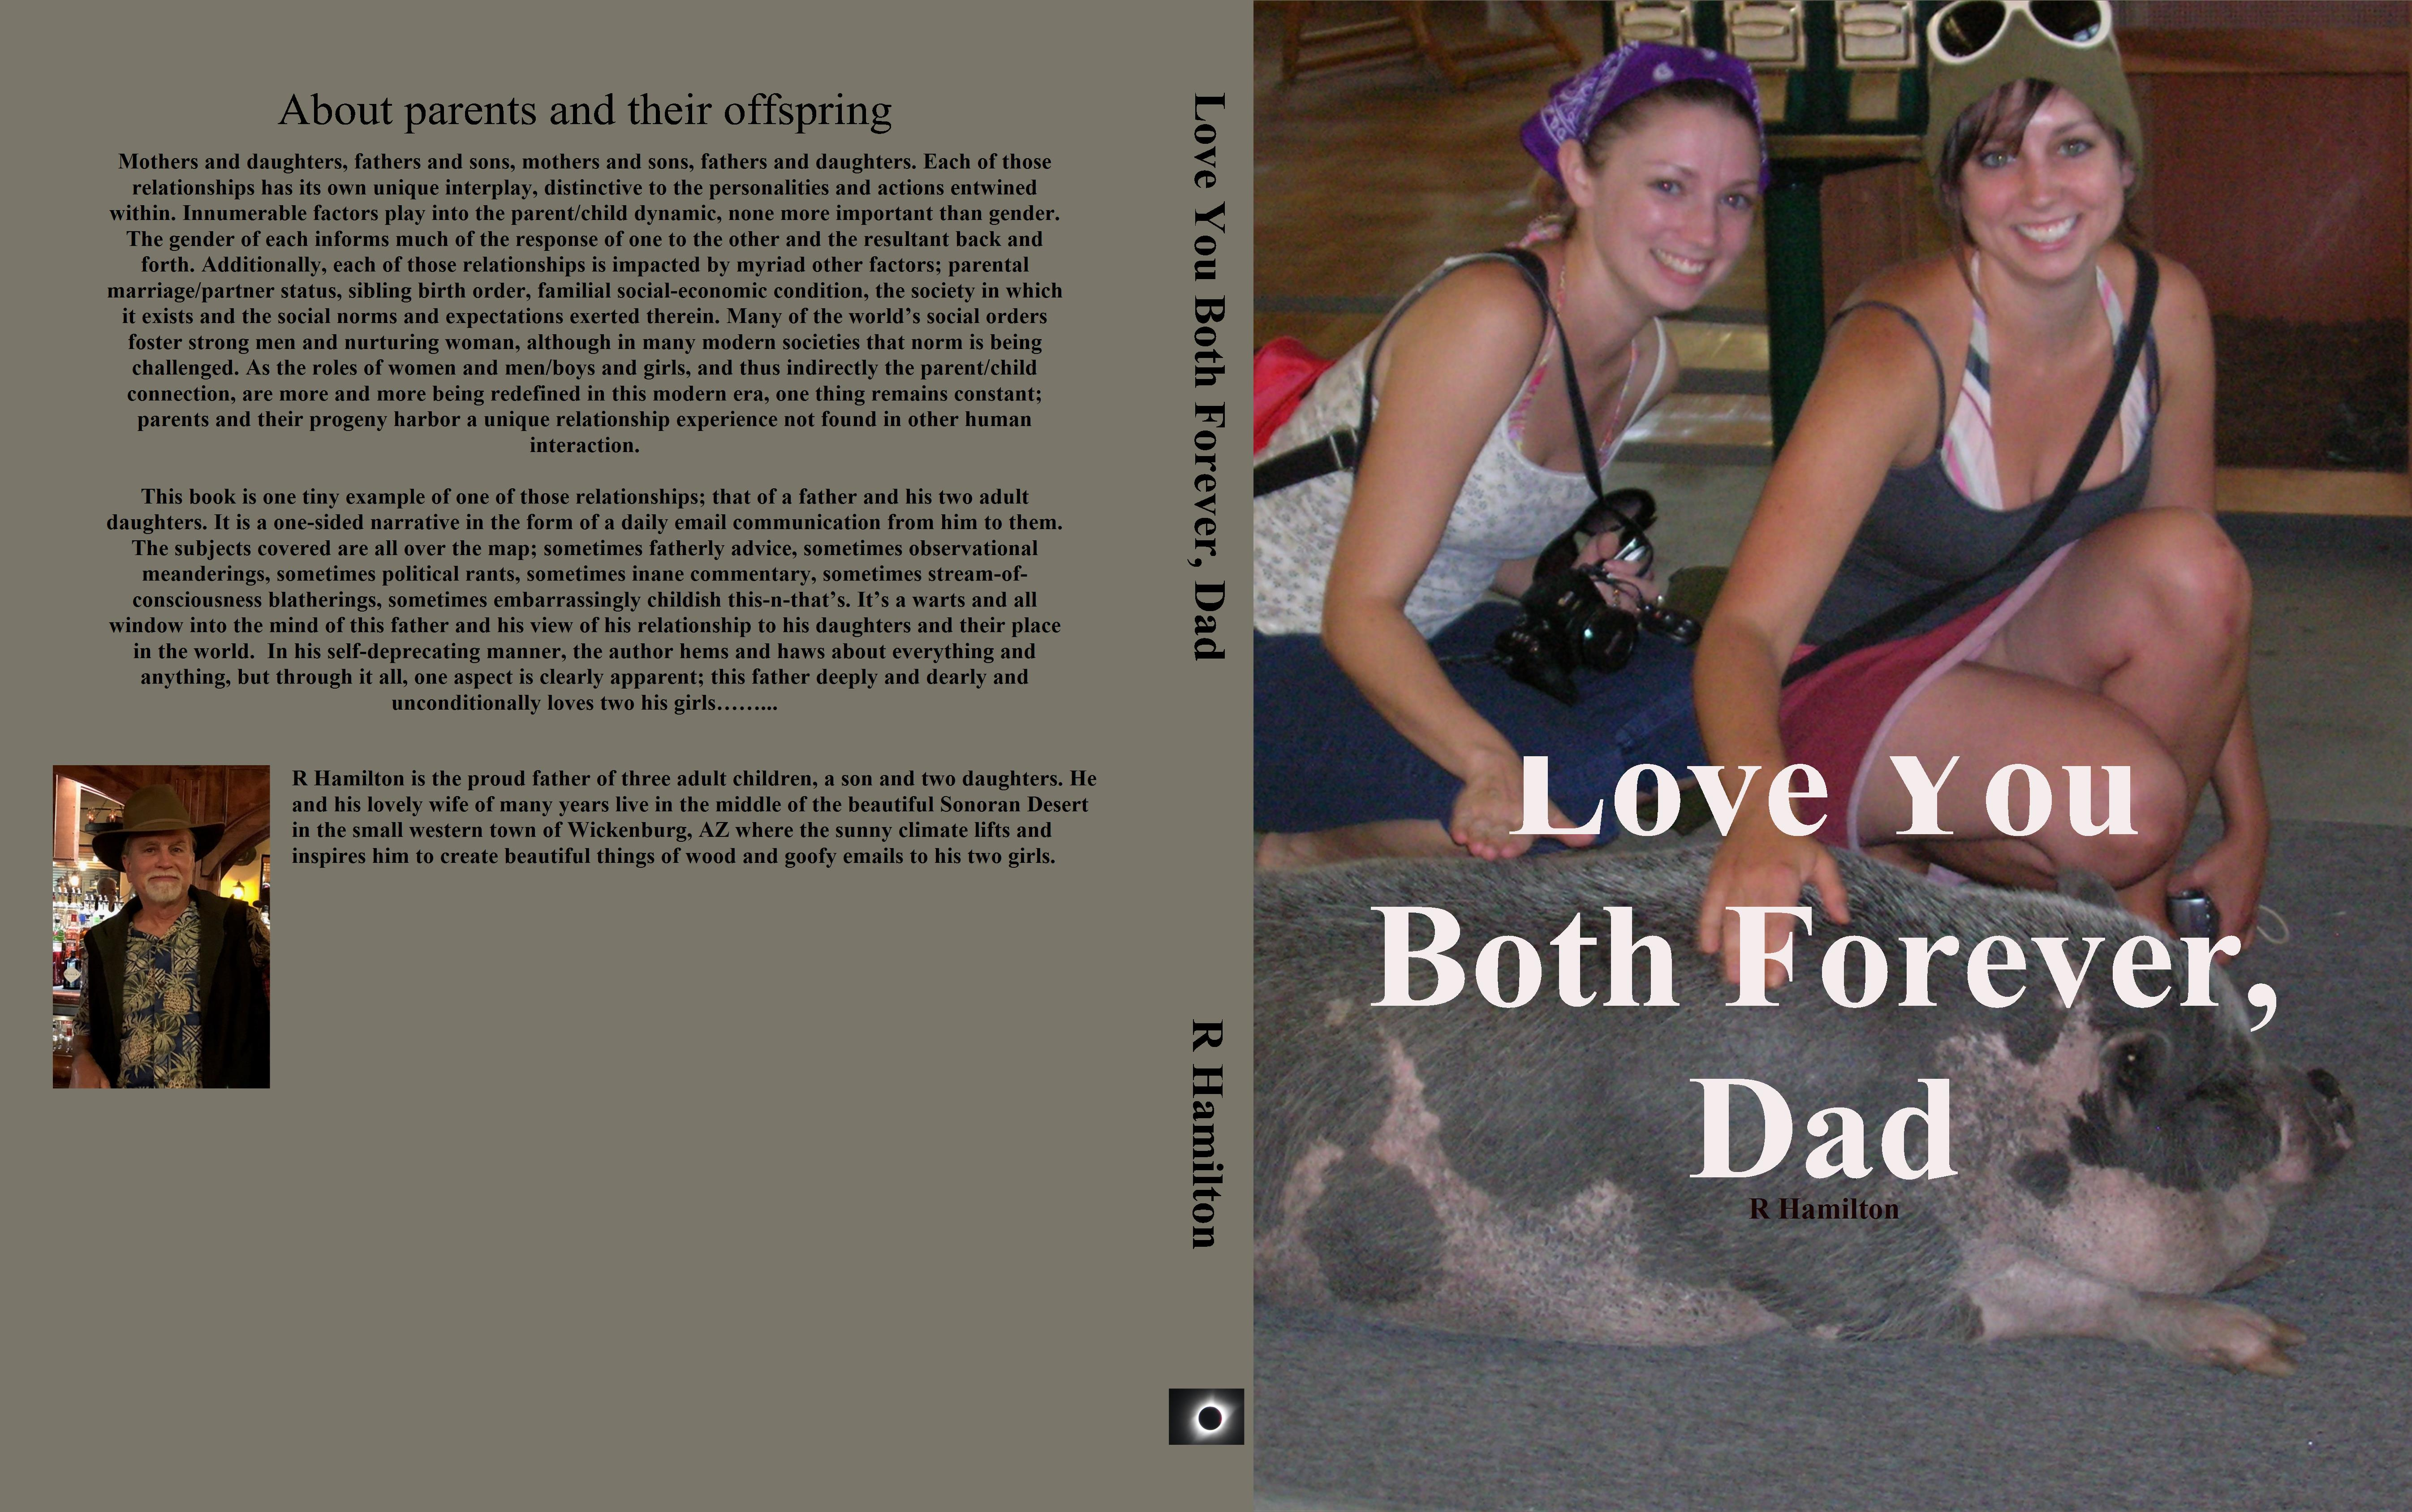 Love You Both Forever, Dad cover image